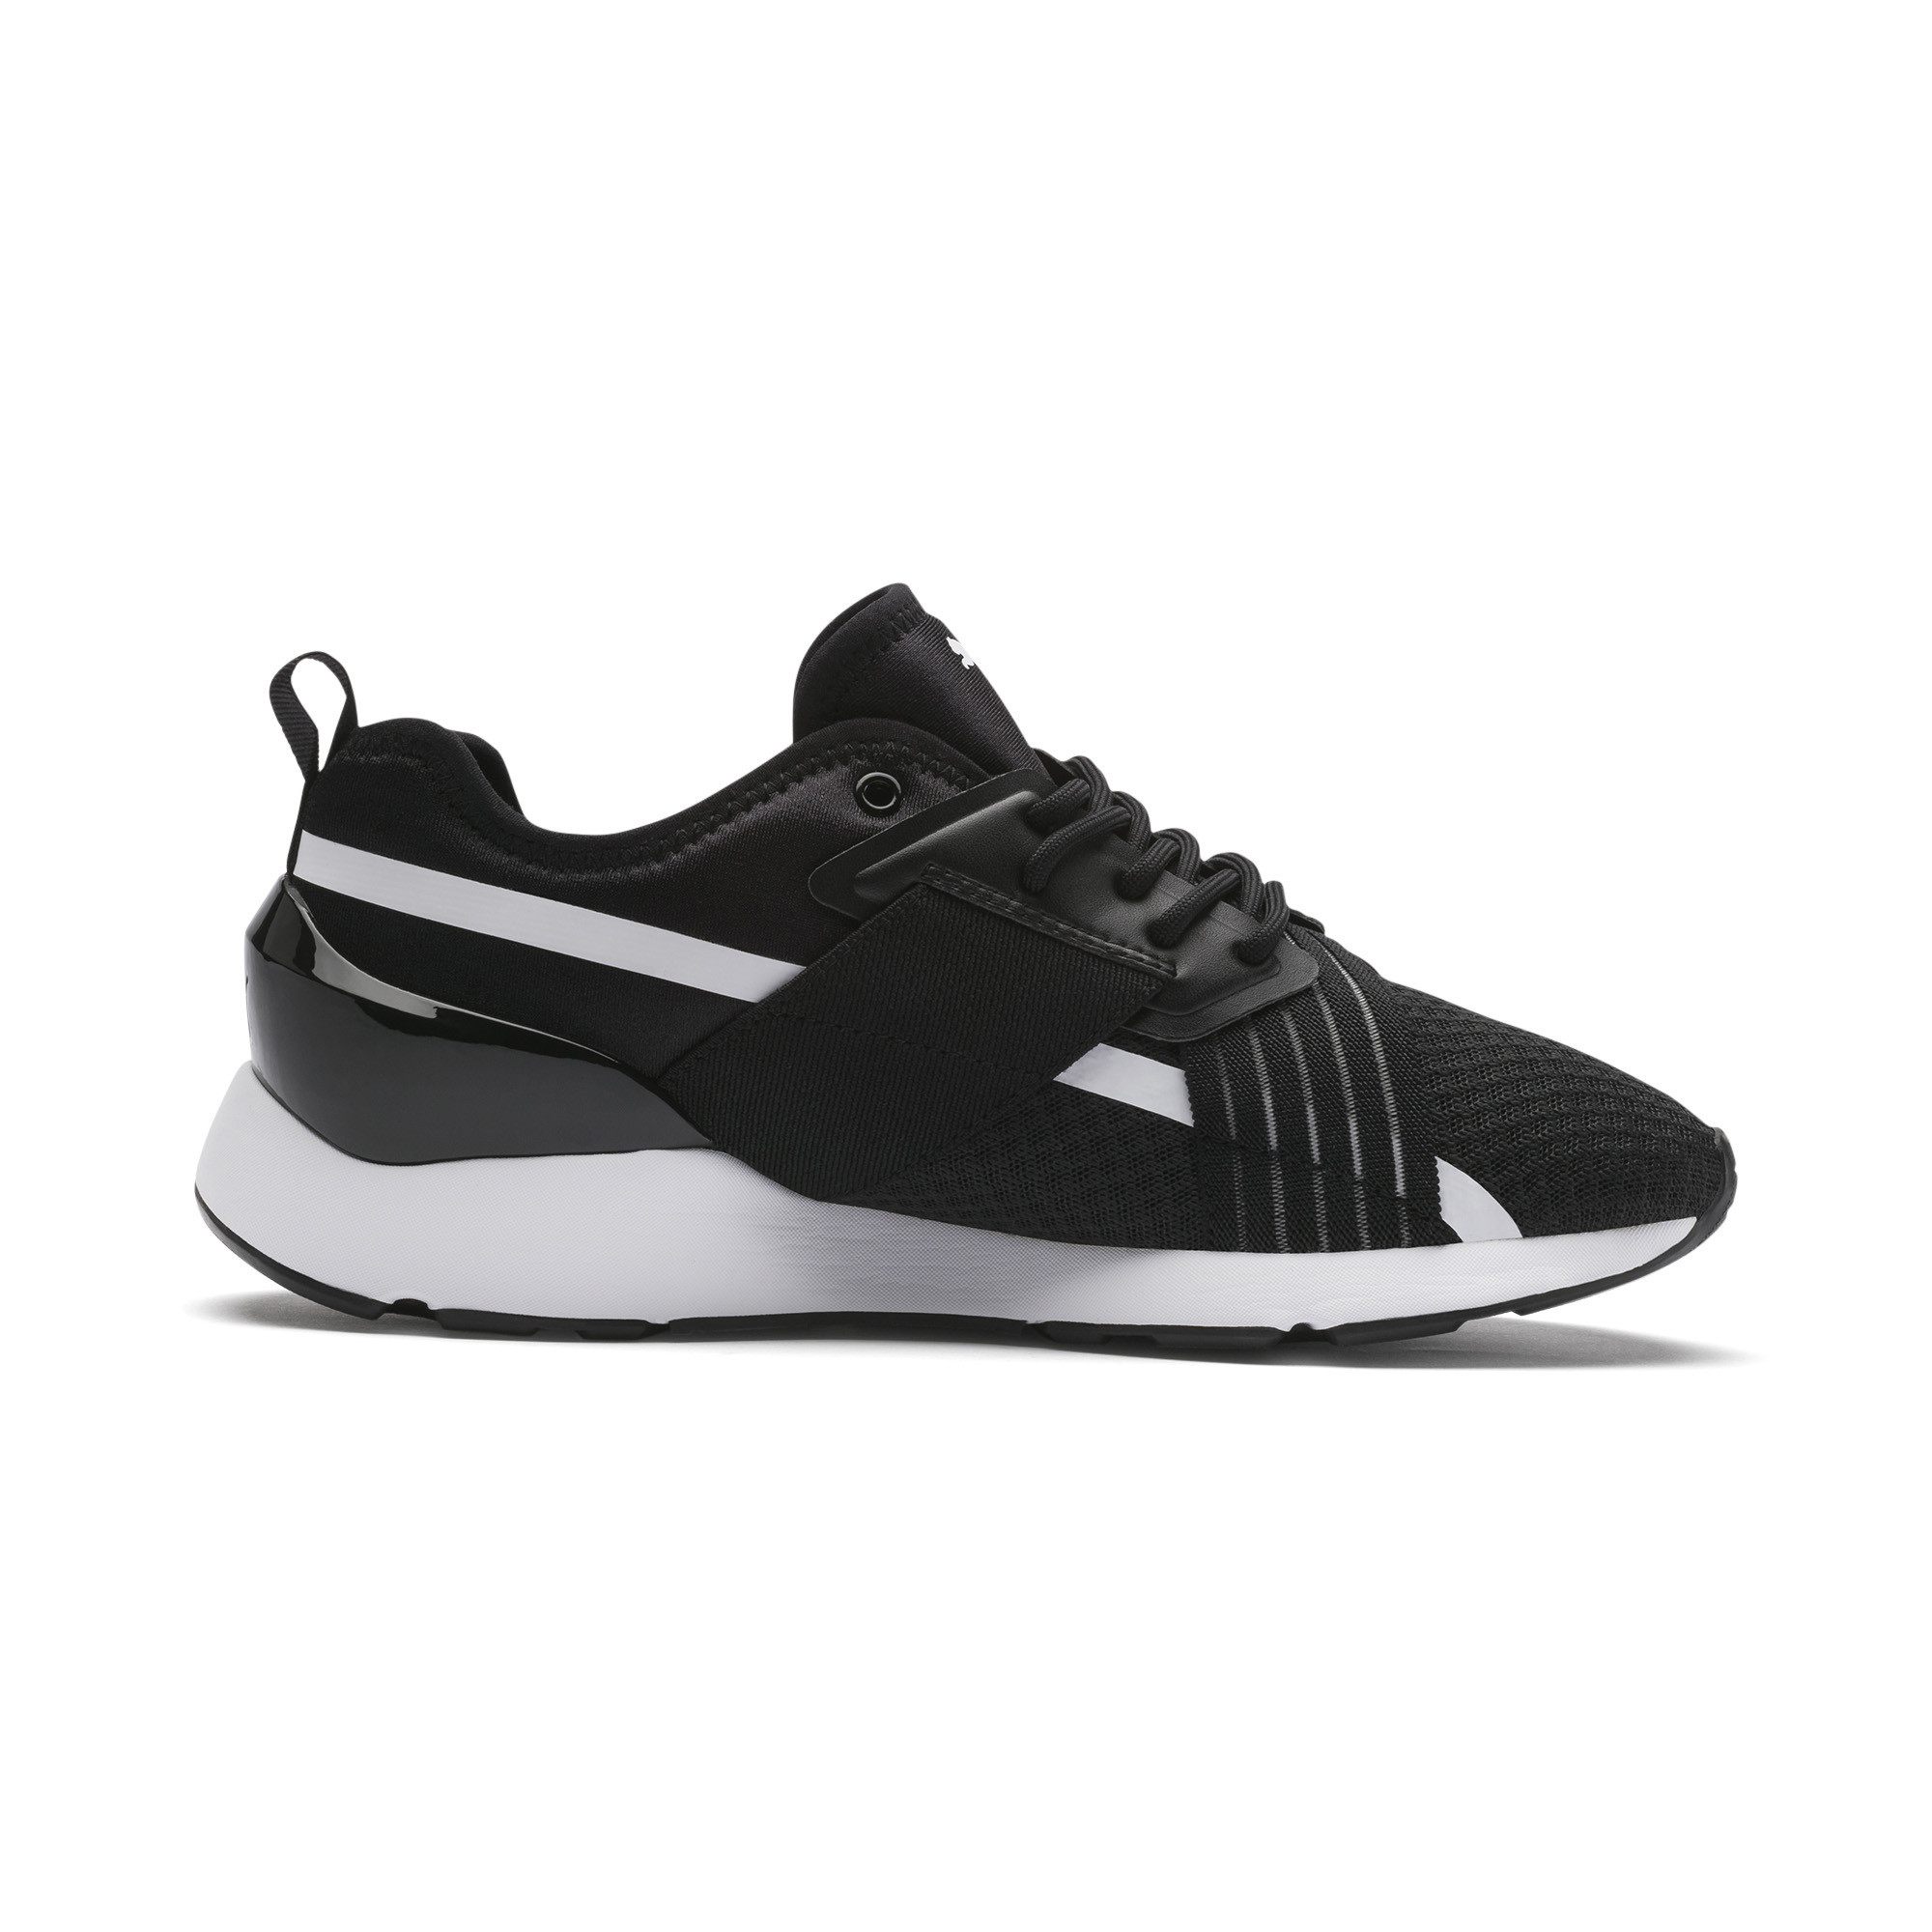 PUMA-Muse-X-2-Women-039-s-Sneakers-Women-Shoe-Evolution thumbnail 13